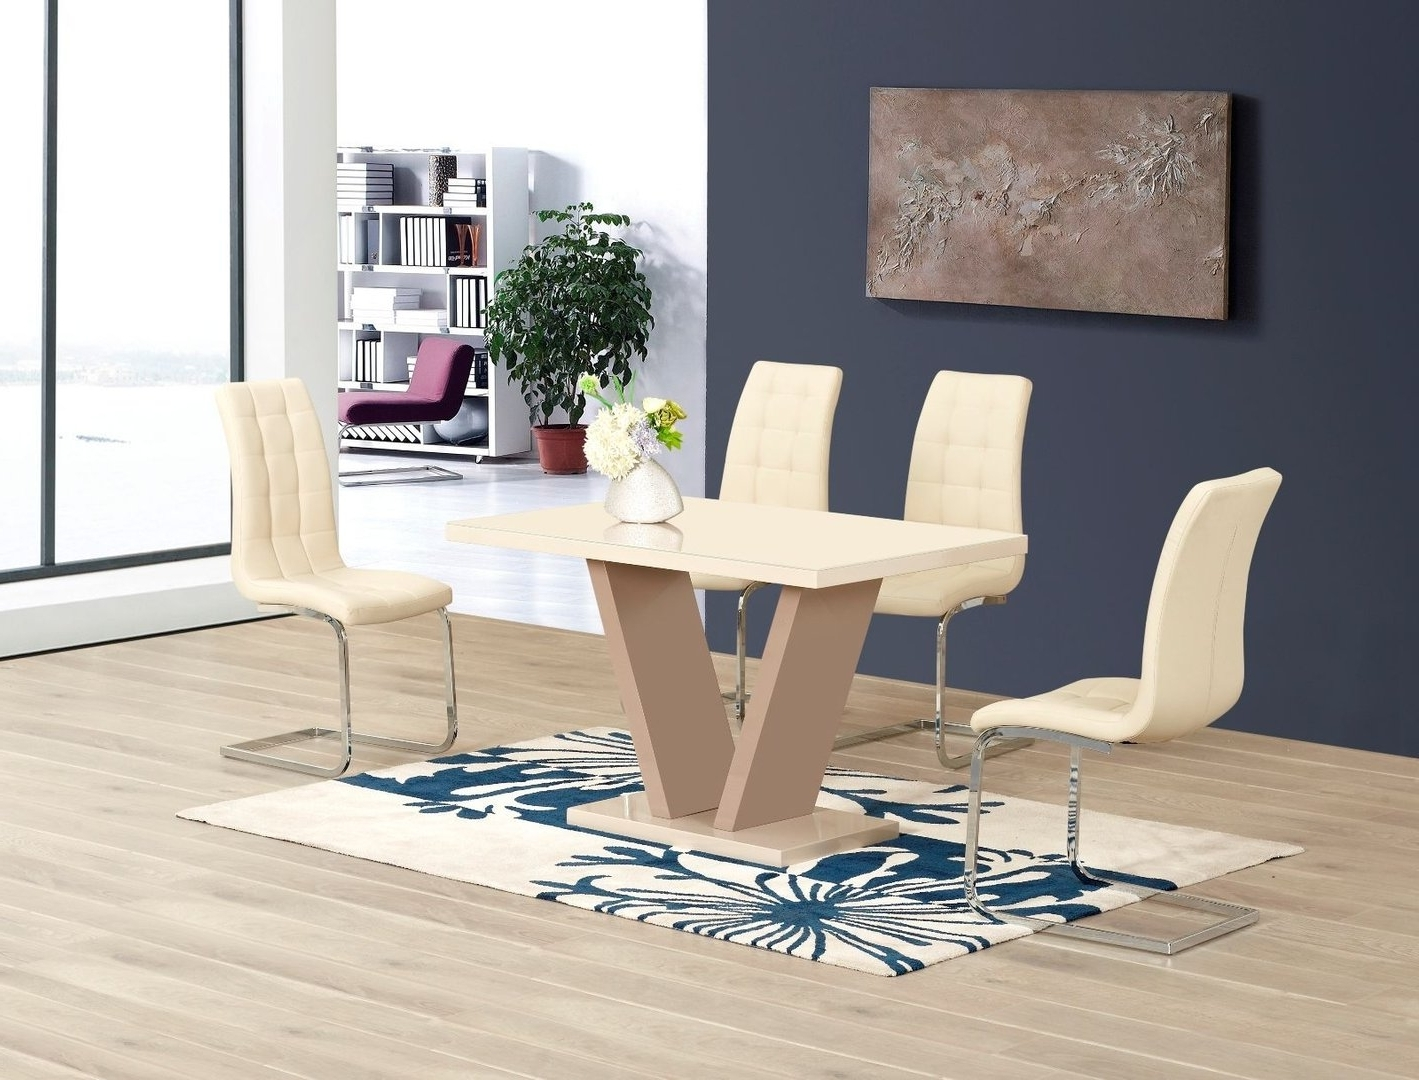 2018 Cream High Gloss Glass Dining Table And 6 Chairs - Homegenies in Glass And Chrome Dining Tables And Chairs